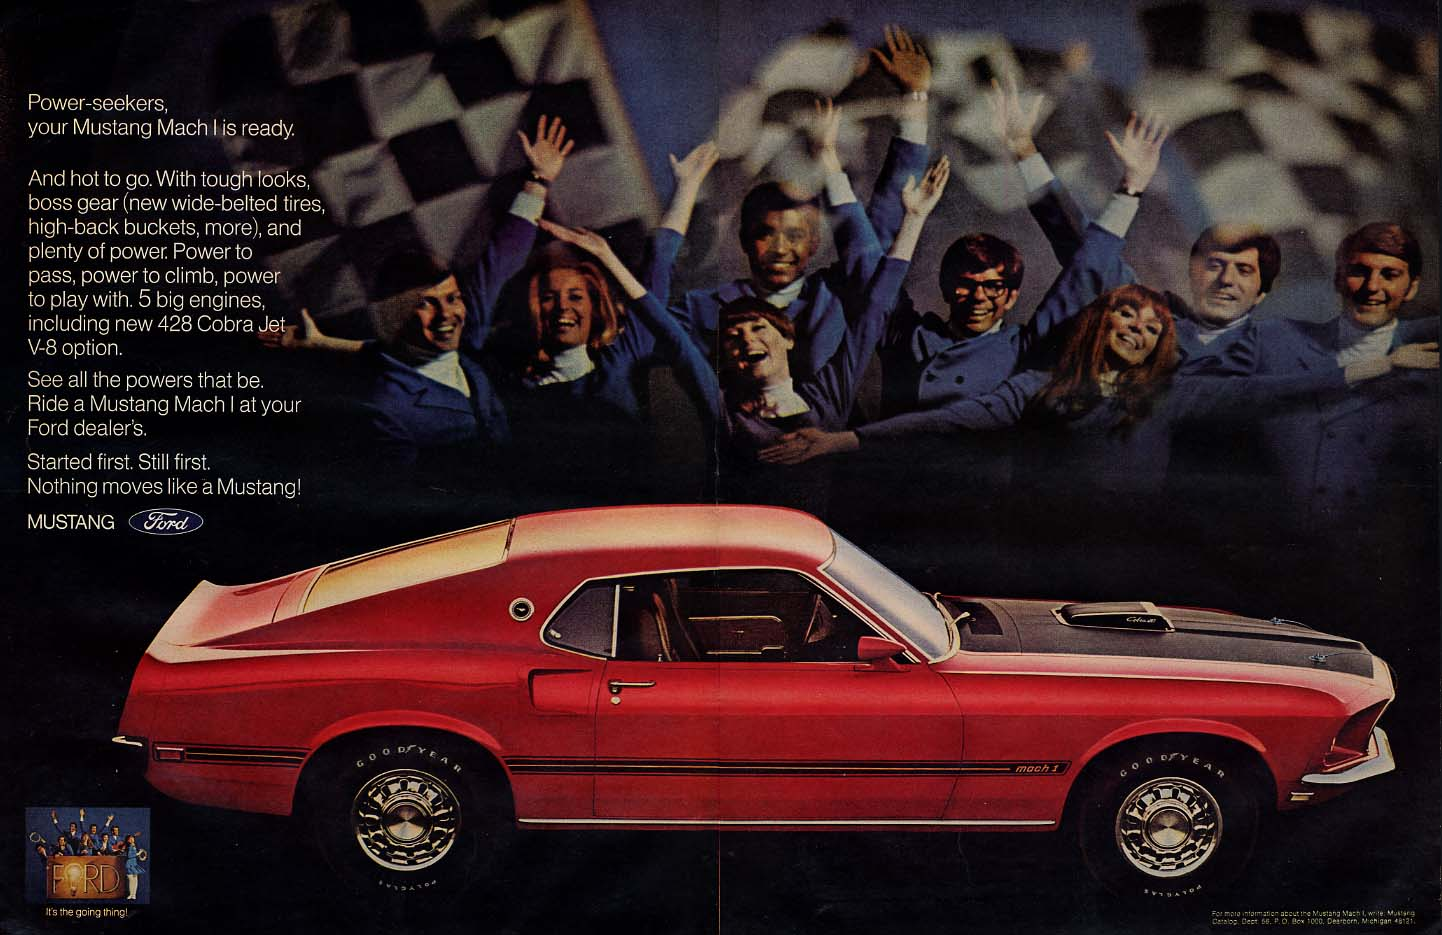 Power seekers your Ford Mustang Mach I Cobra Jet is ready ad 1969 L